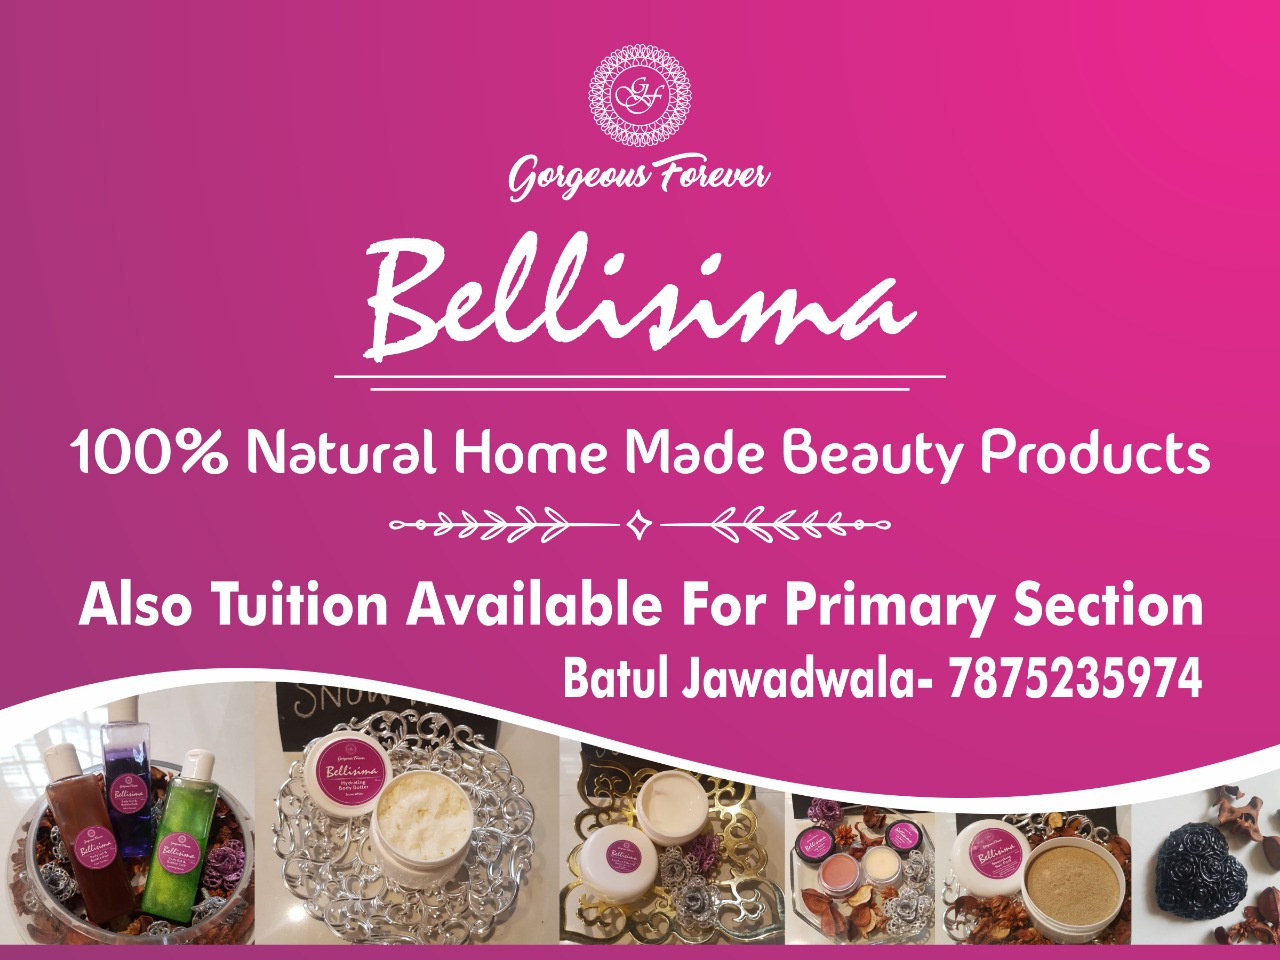 Bellisima-Home Made Beauty Products